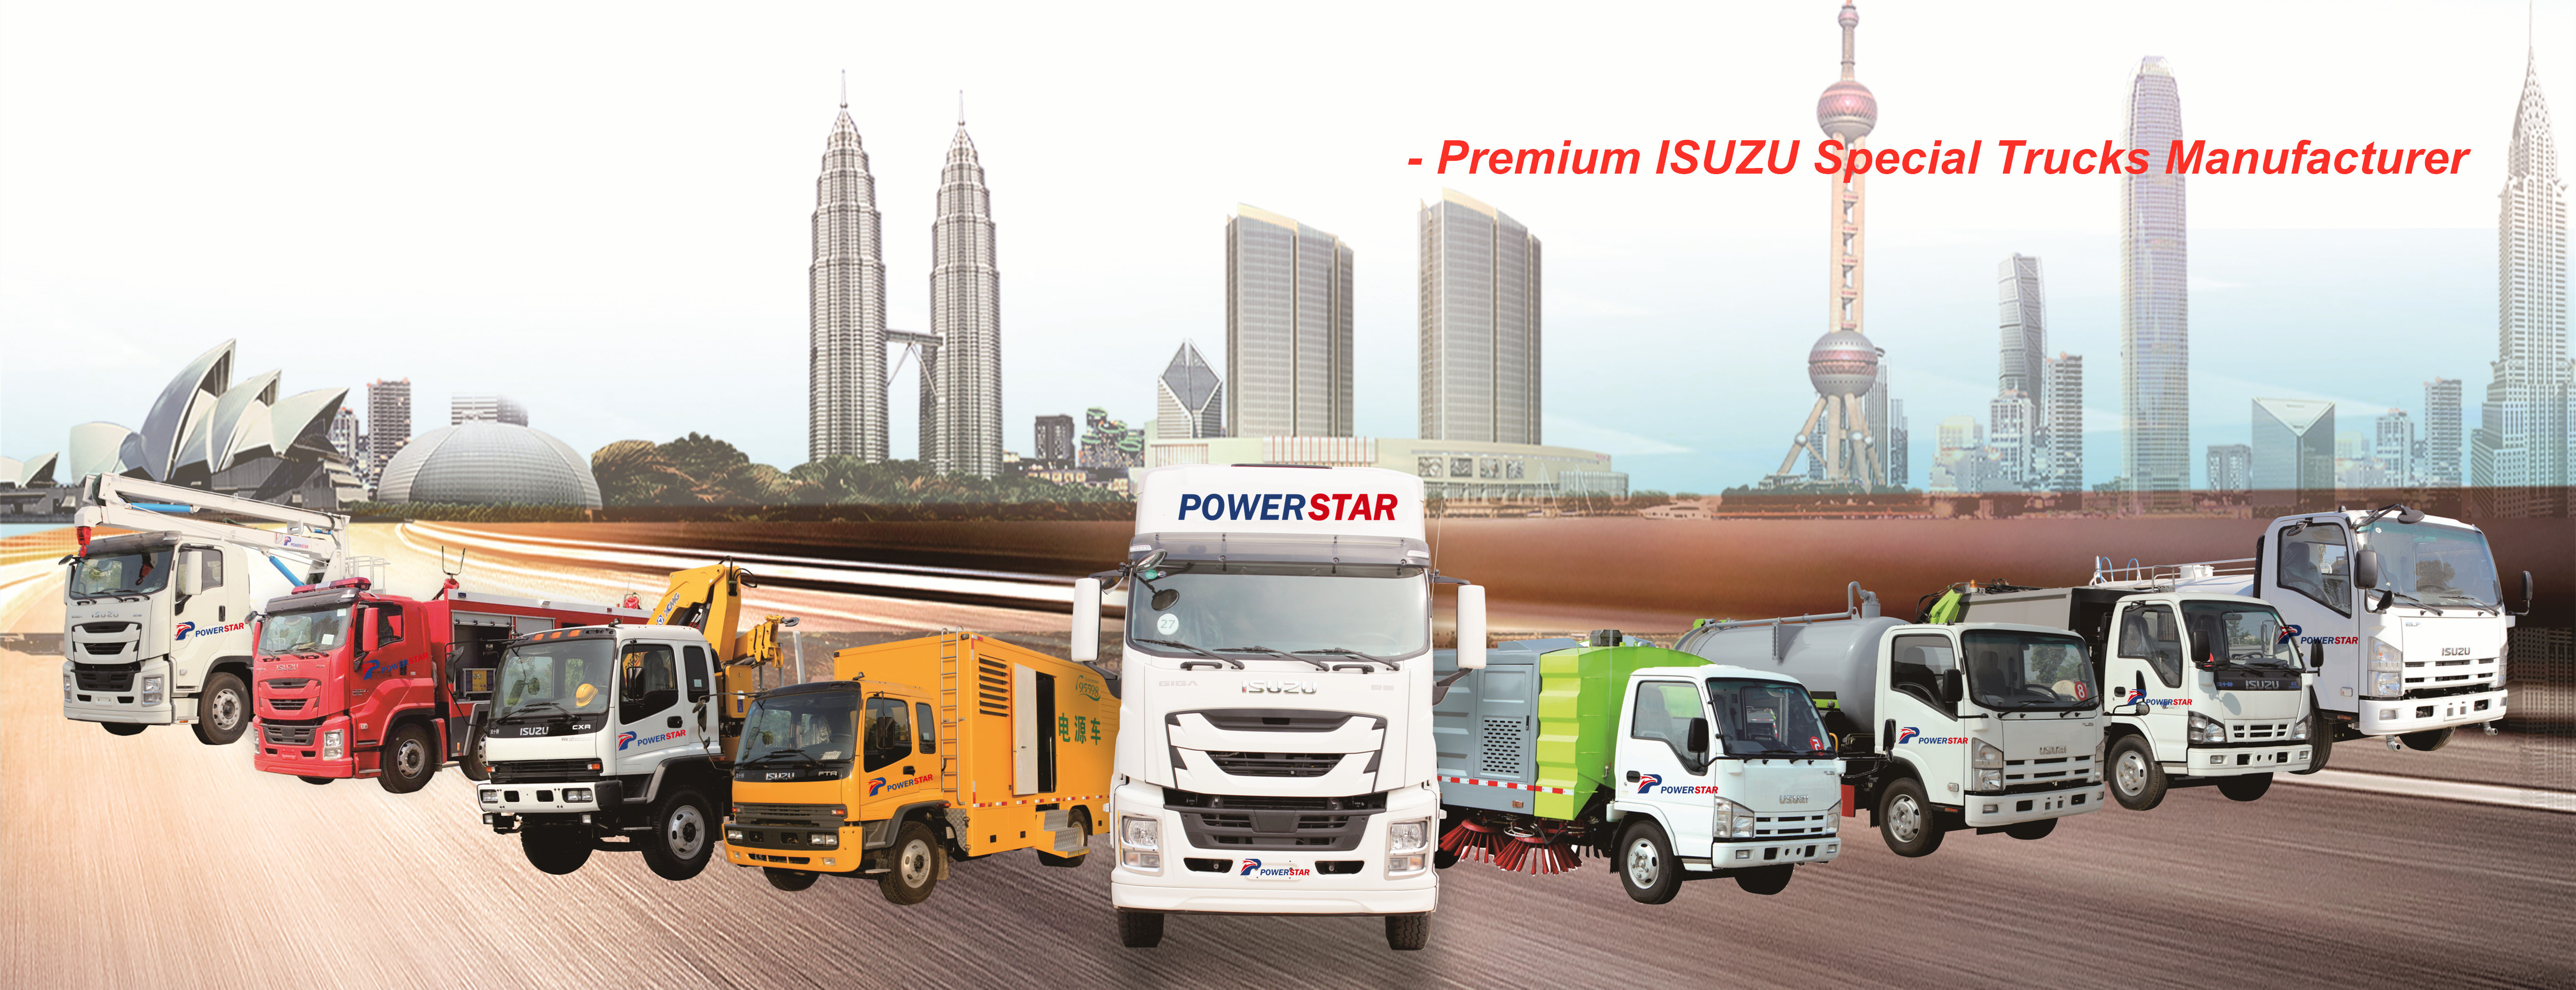 Powerstar trucks